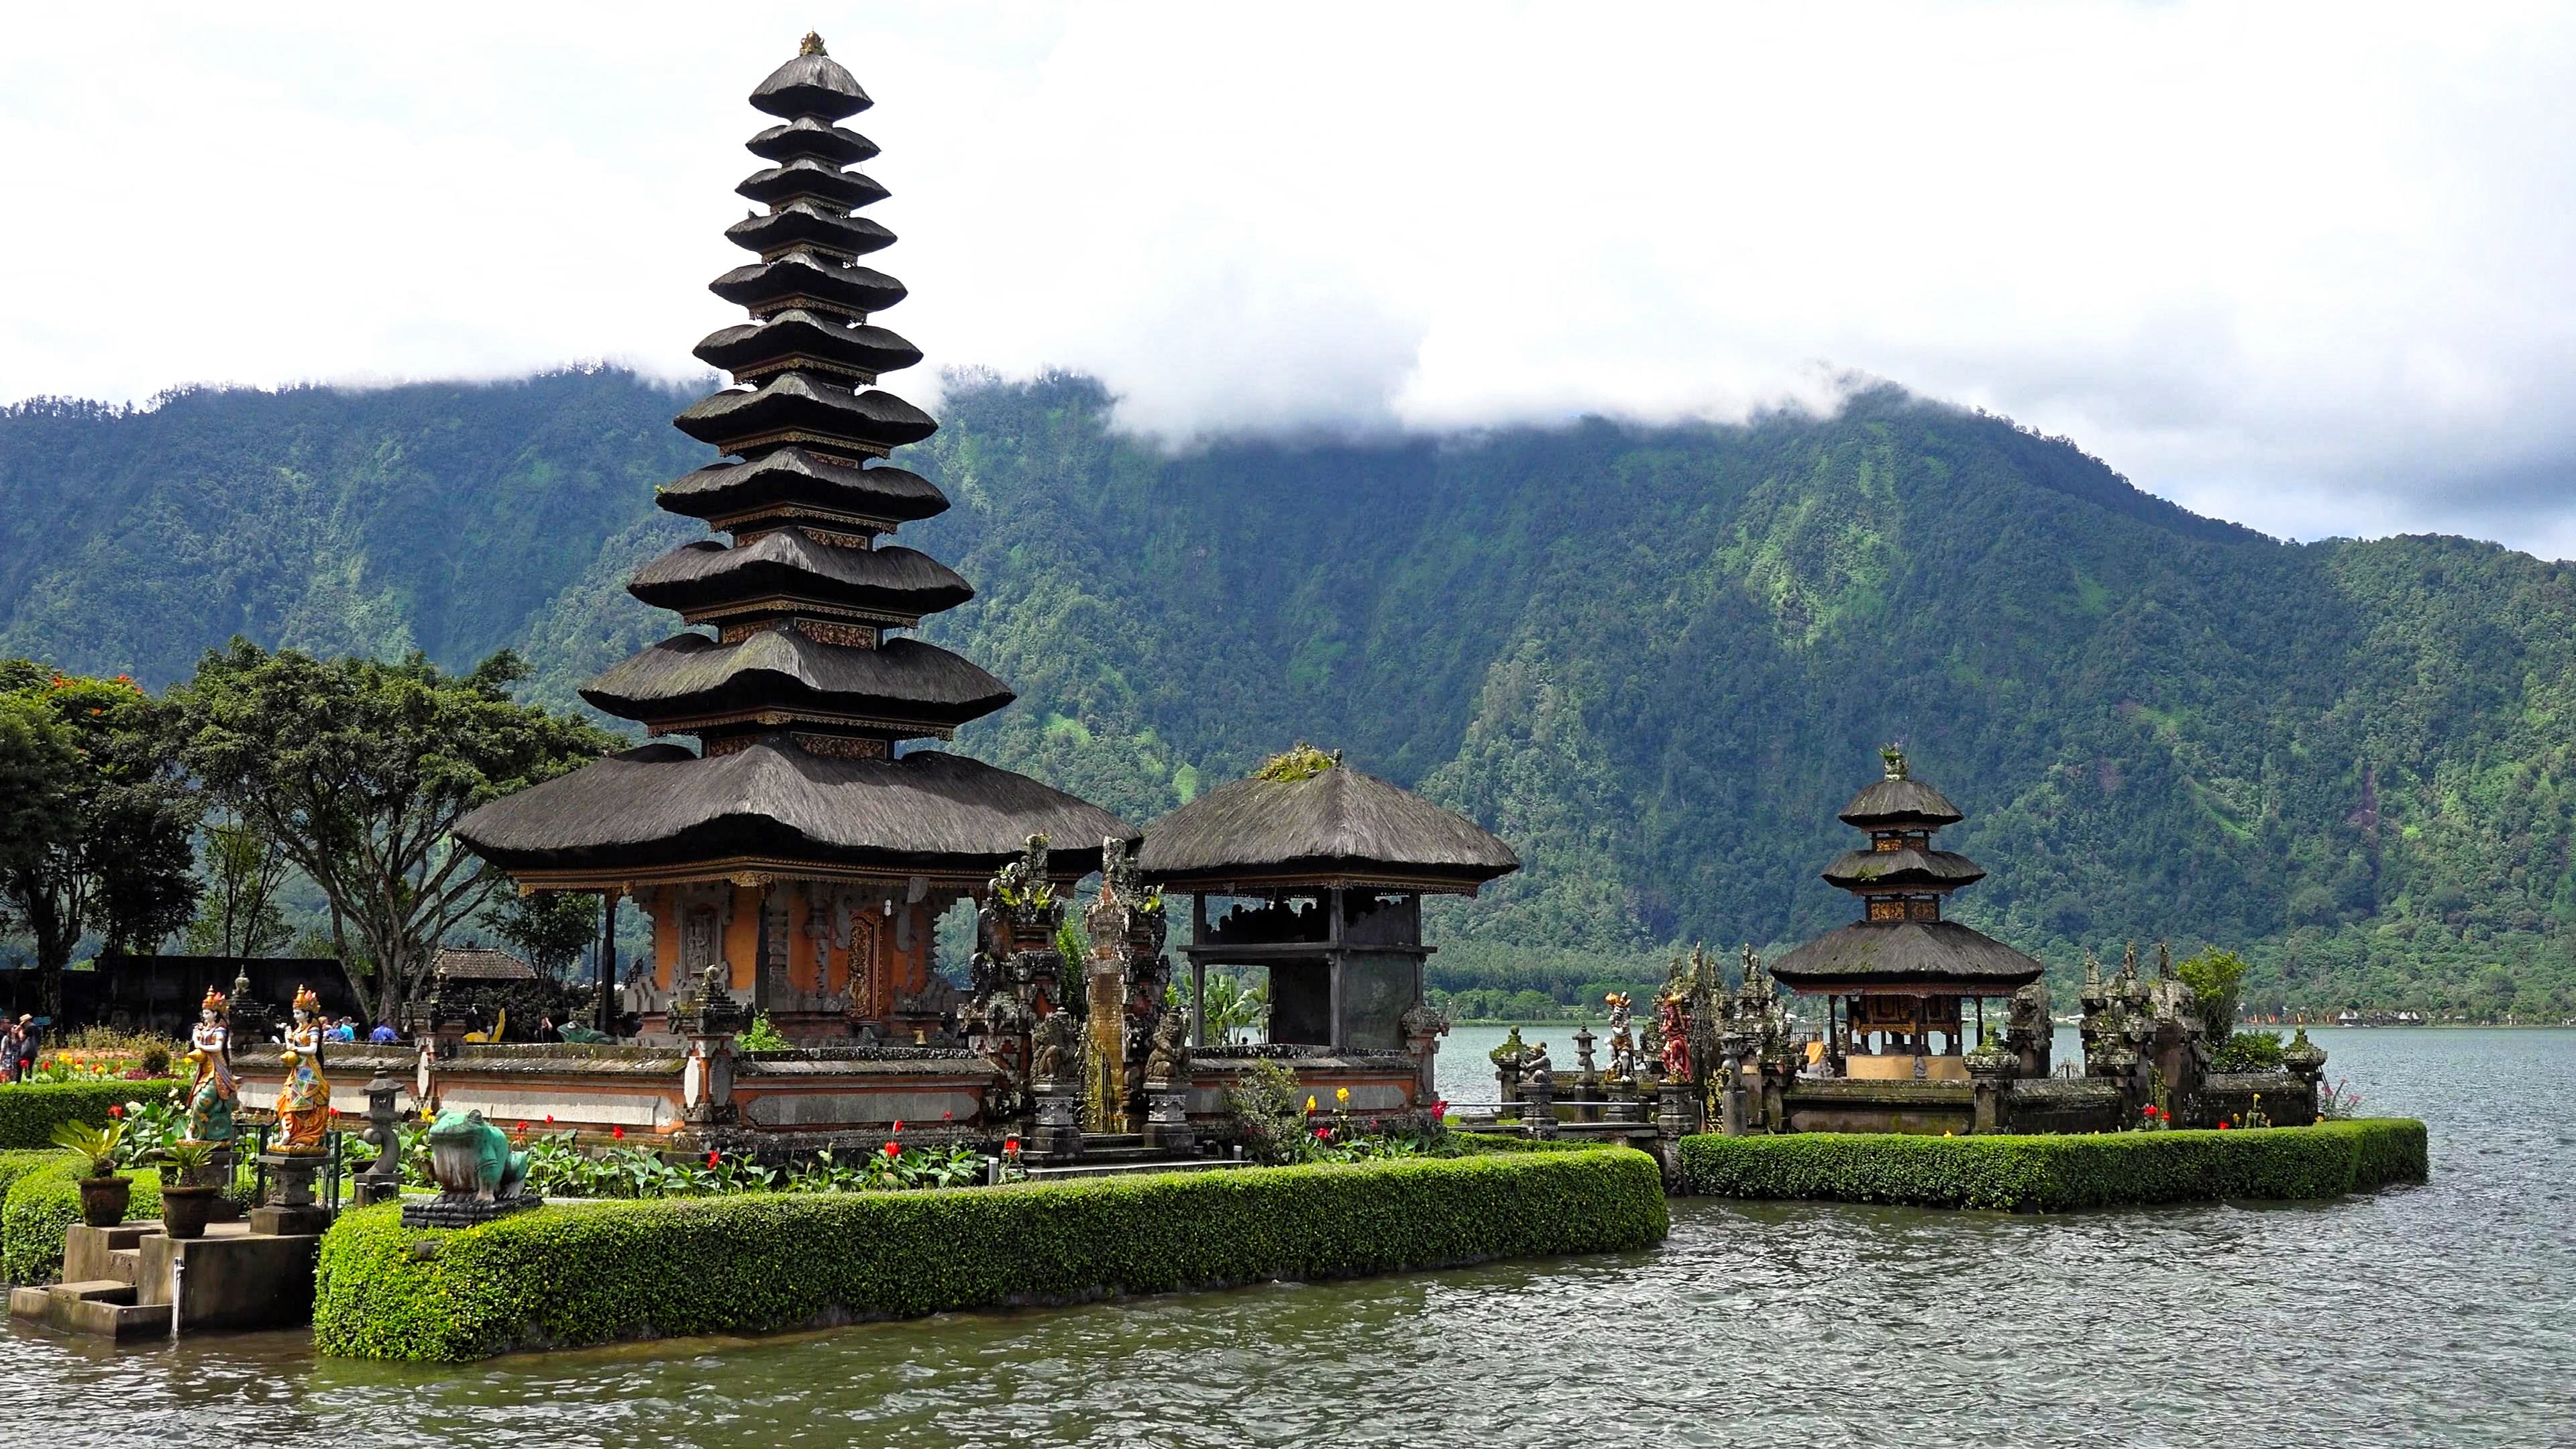 Indonesia's Island Bali welcomes visitors for Yuletide